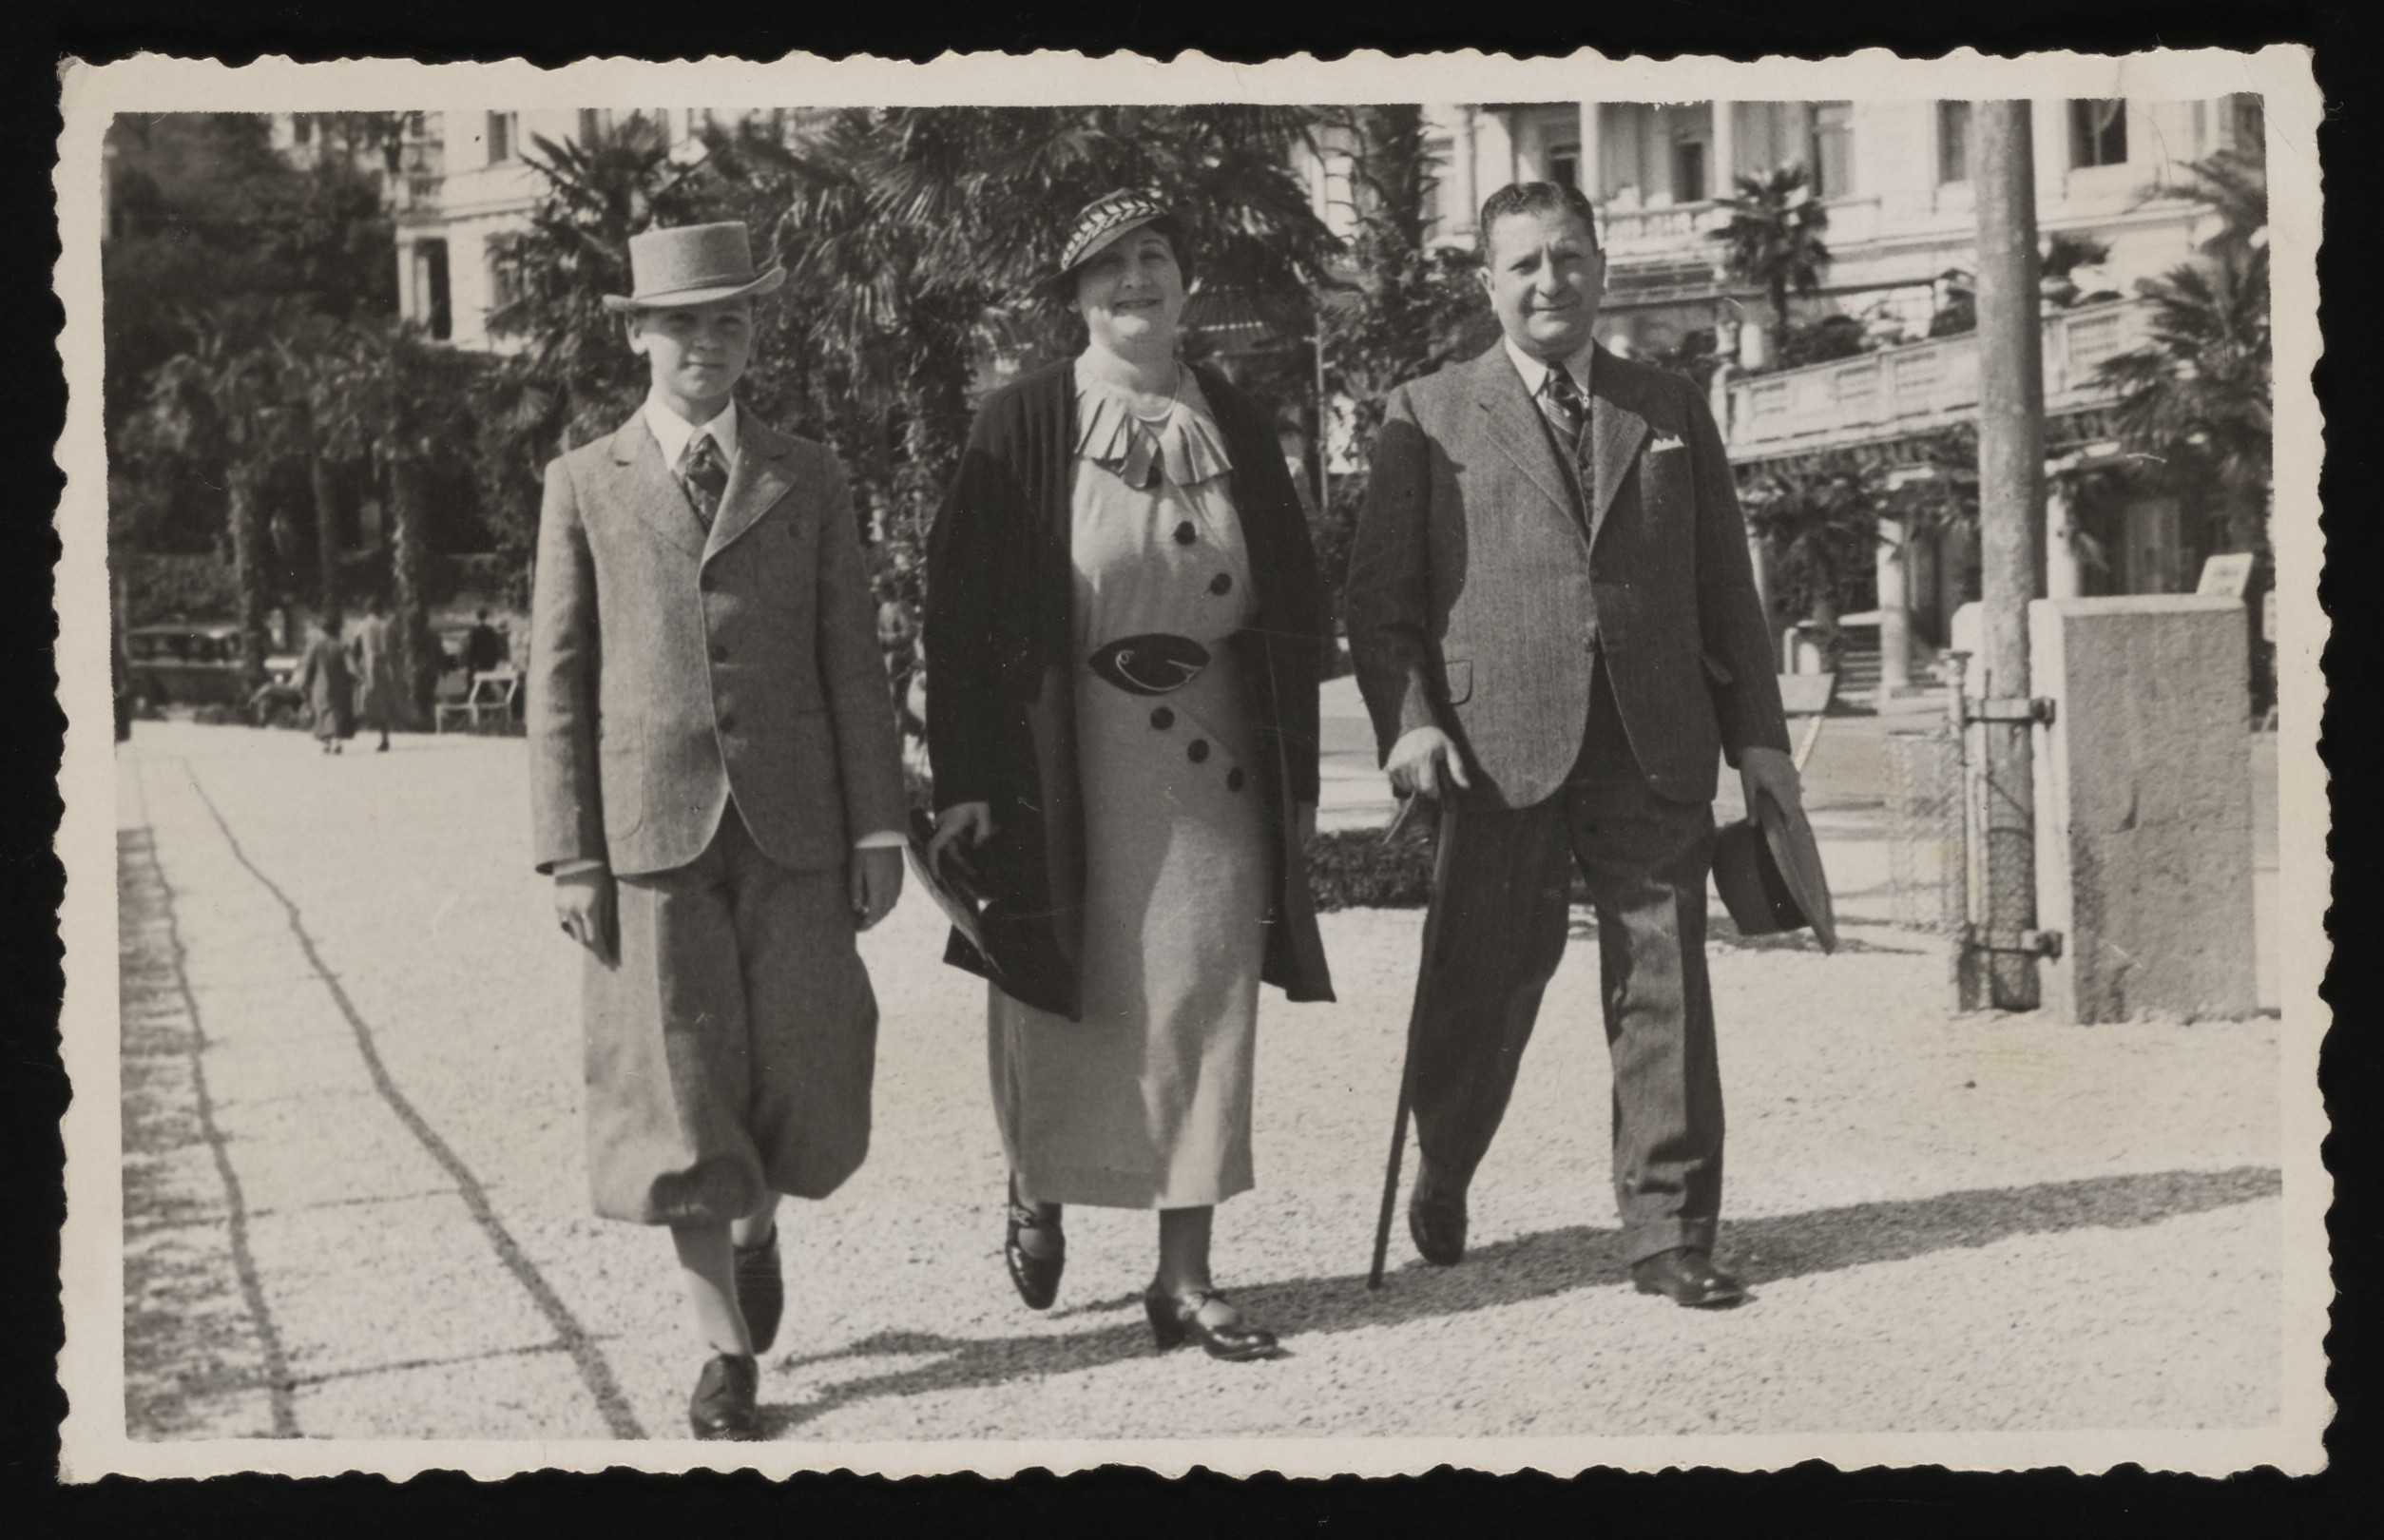 The Vogel family walks down a street while on vacation in Italy.  Left to right are Steven, Wilma and Odon Vogel.